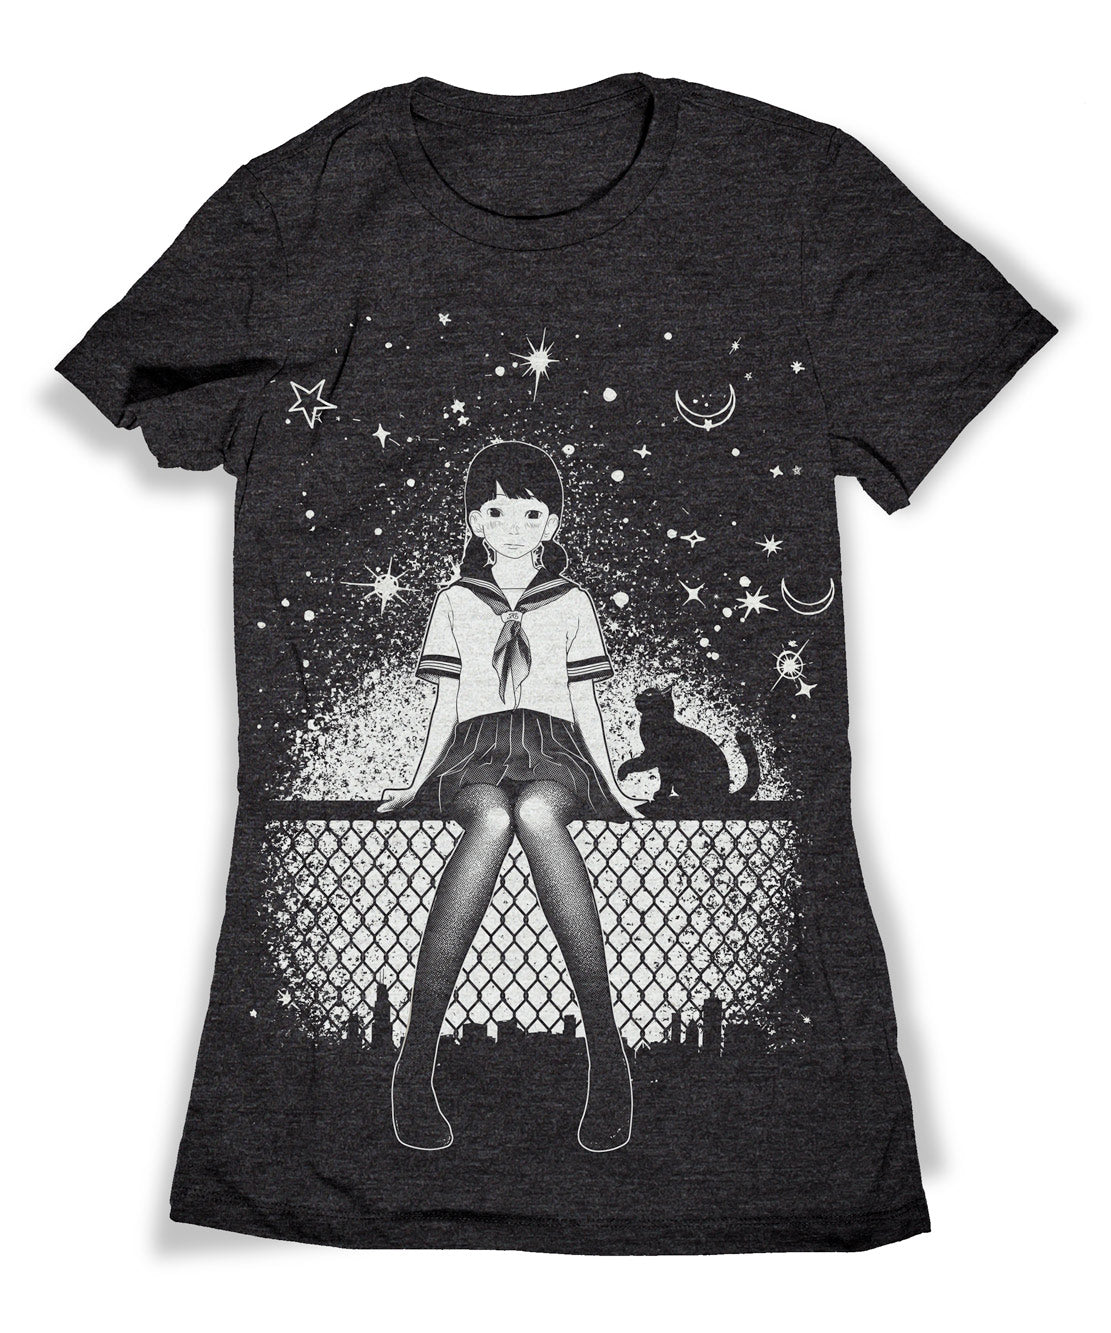 Anime Girl with Cat & Stars T-shirt